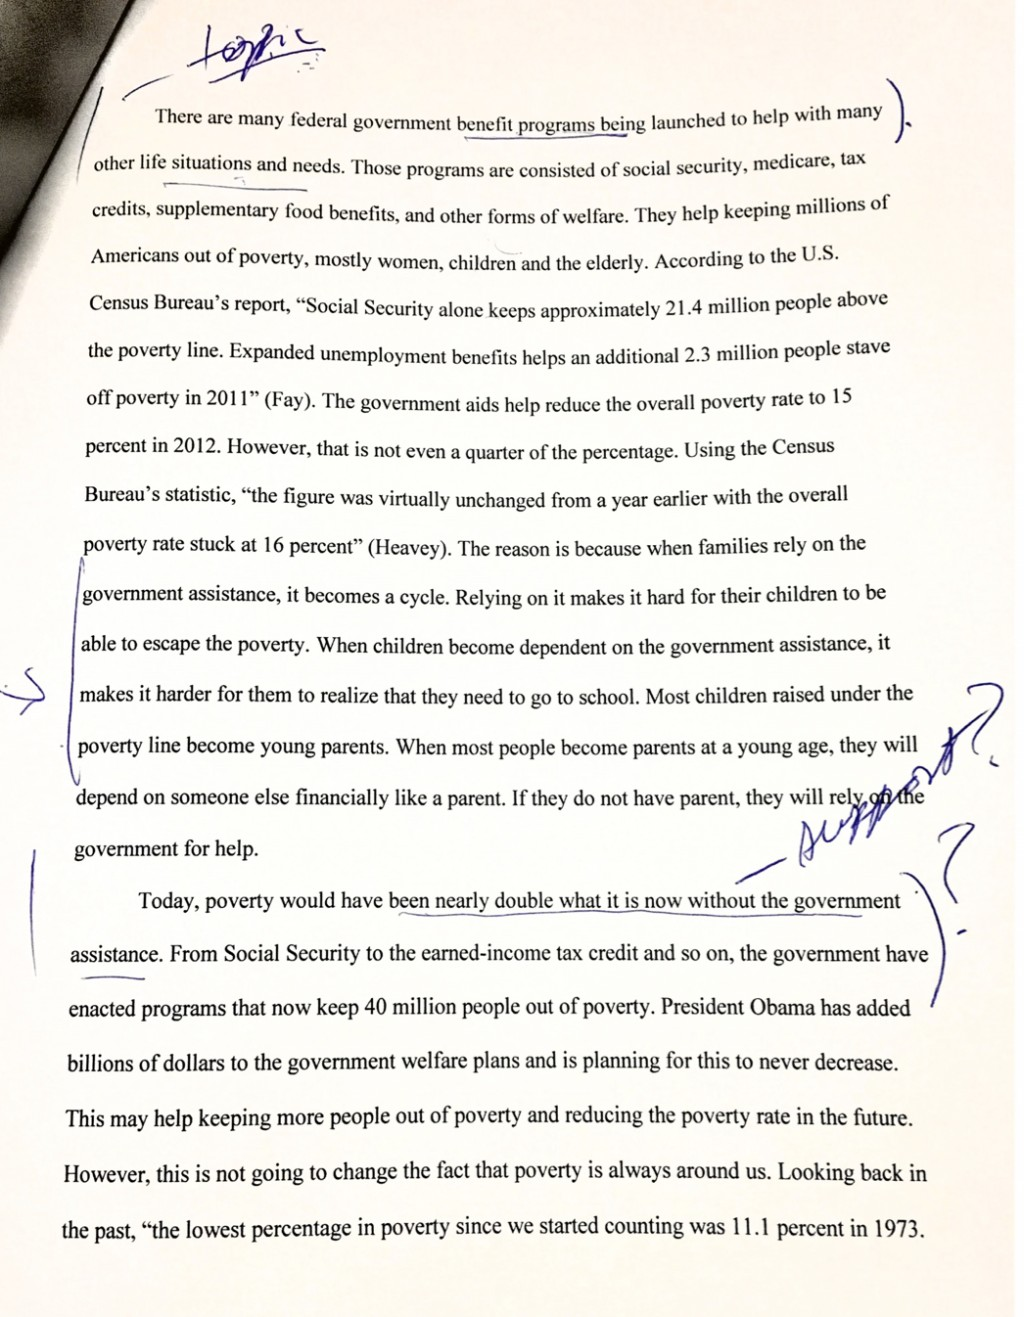 003 Help With My Essay Example Surprising Me Introduction Sound Better Research Paper For Free Large